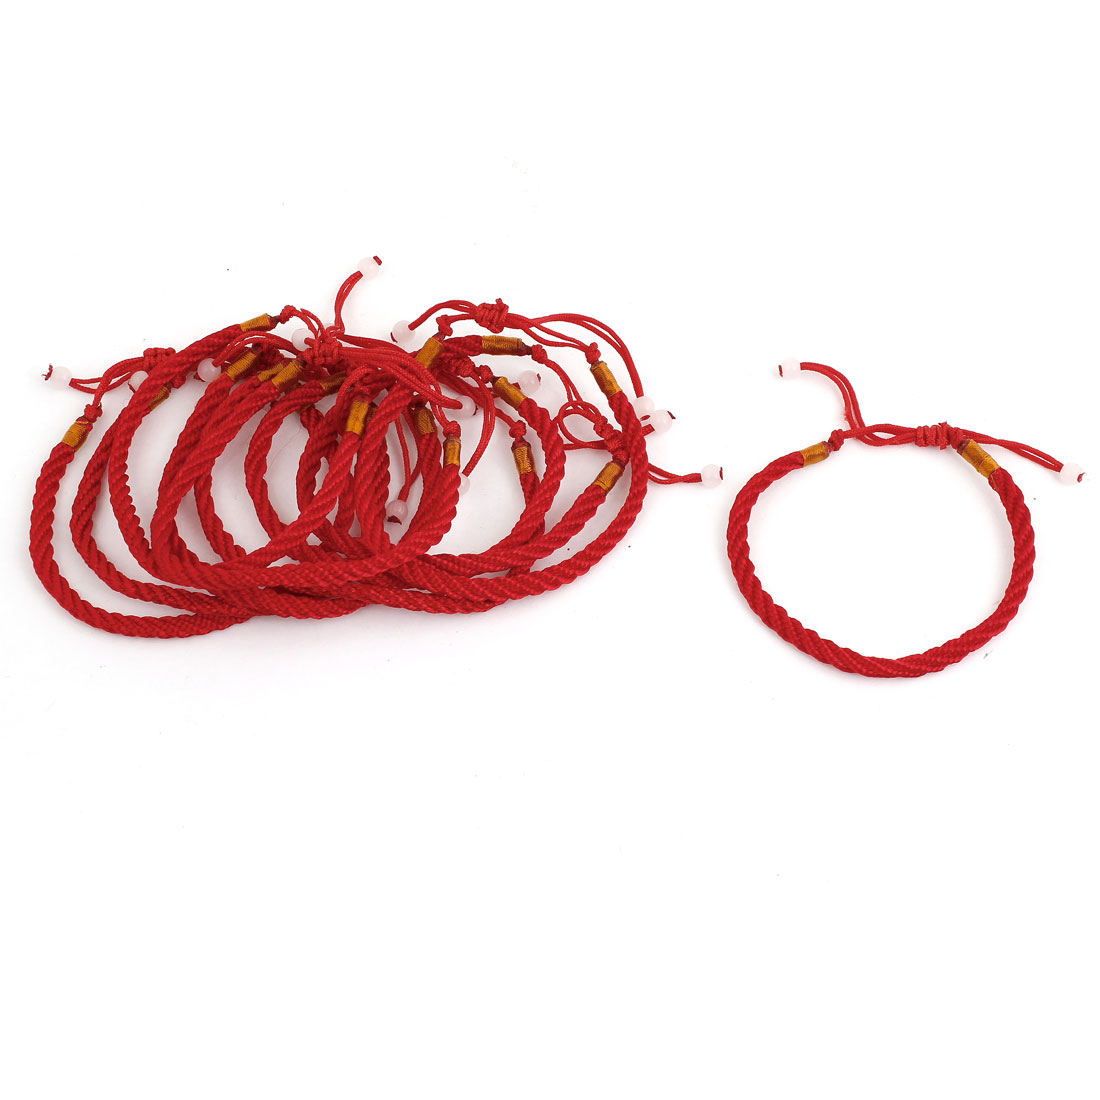 White Beads Decor Red Nylon Rope Button Knot Closure Bracelets 10 Pcs